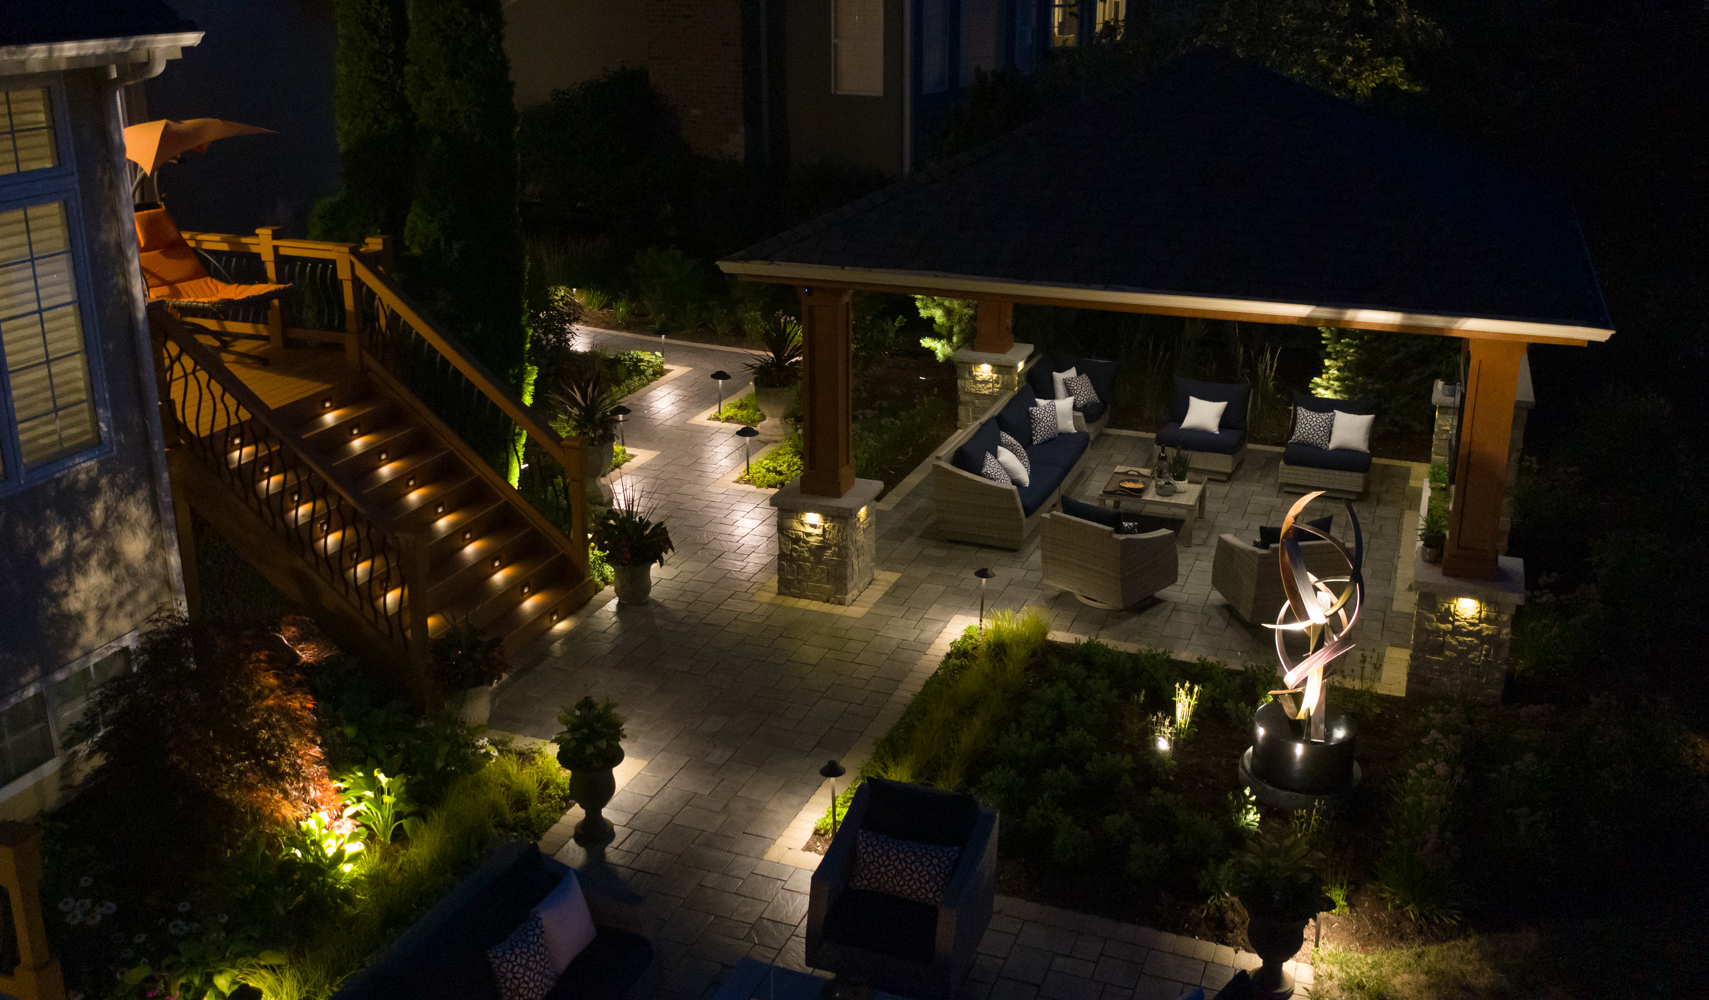 aerial-patio-paver-seating-sculpture-steps-landscaping-lighting-pergola